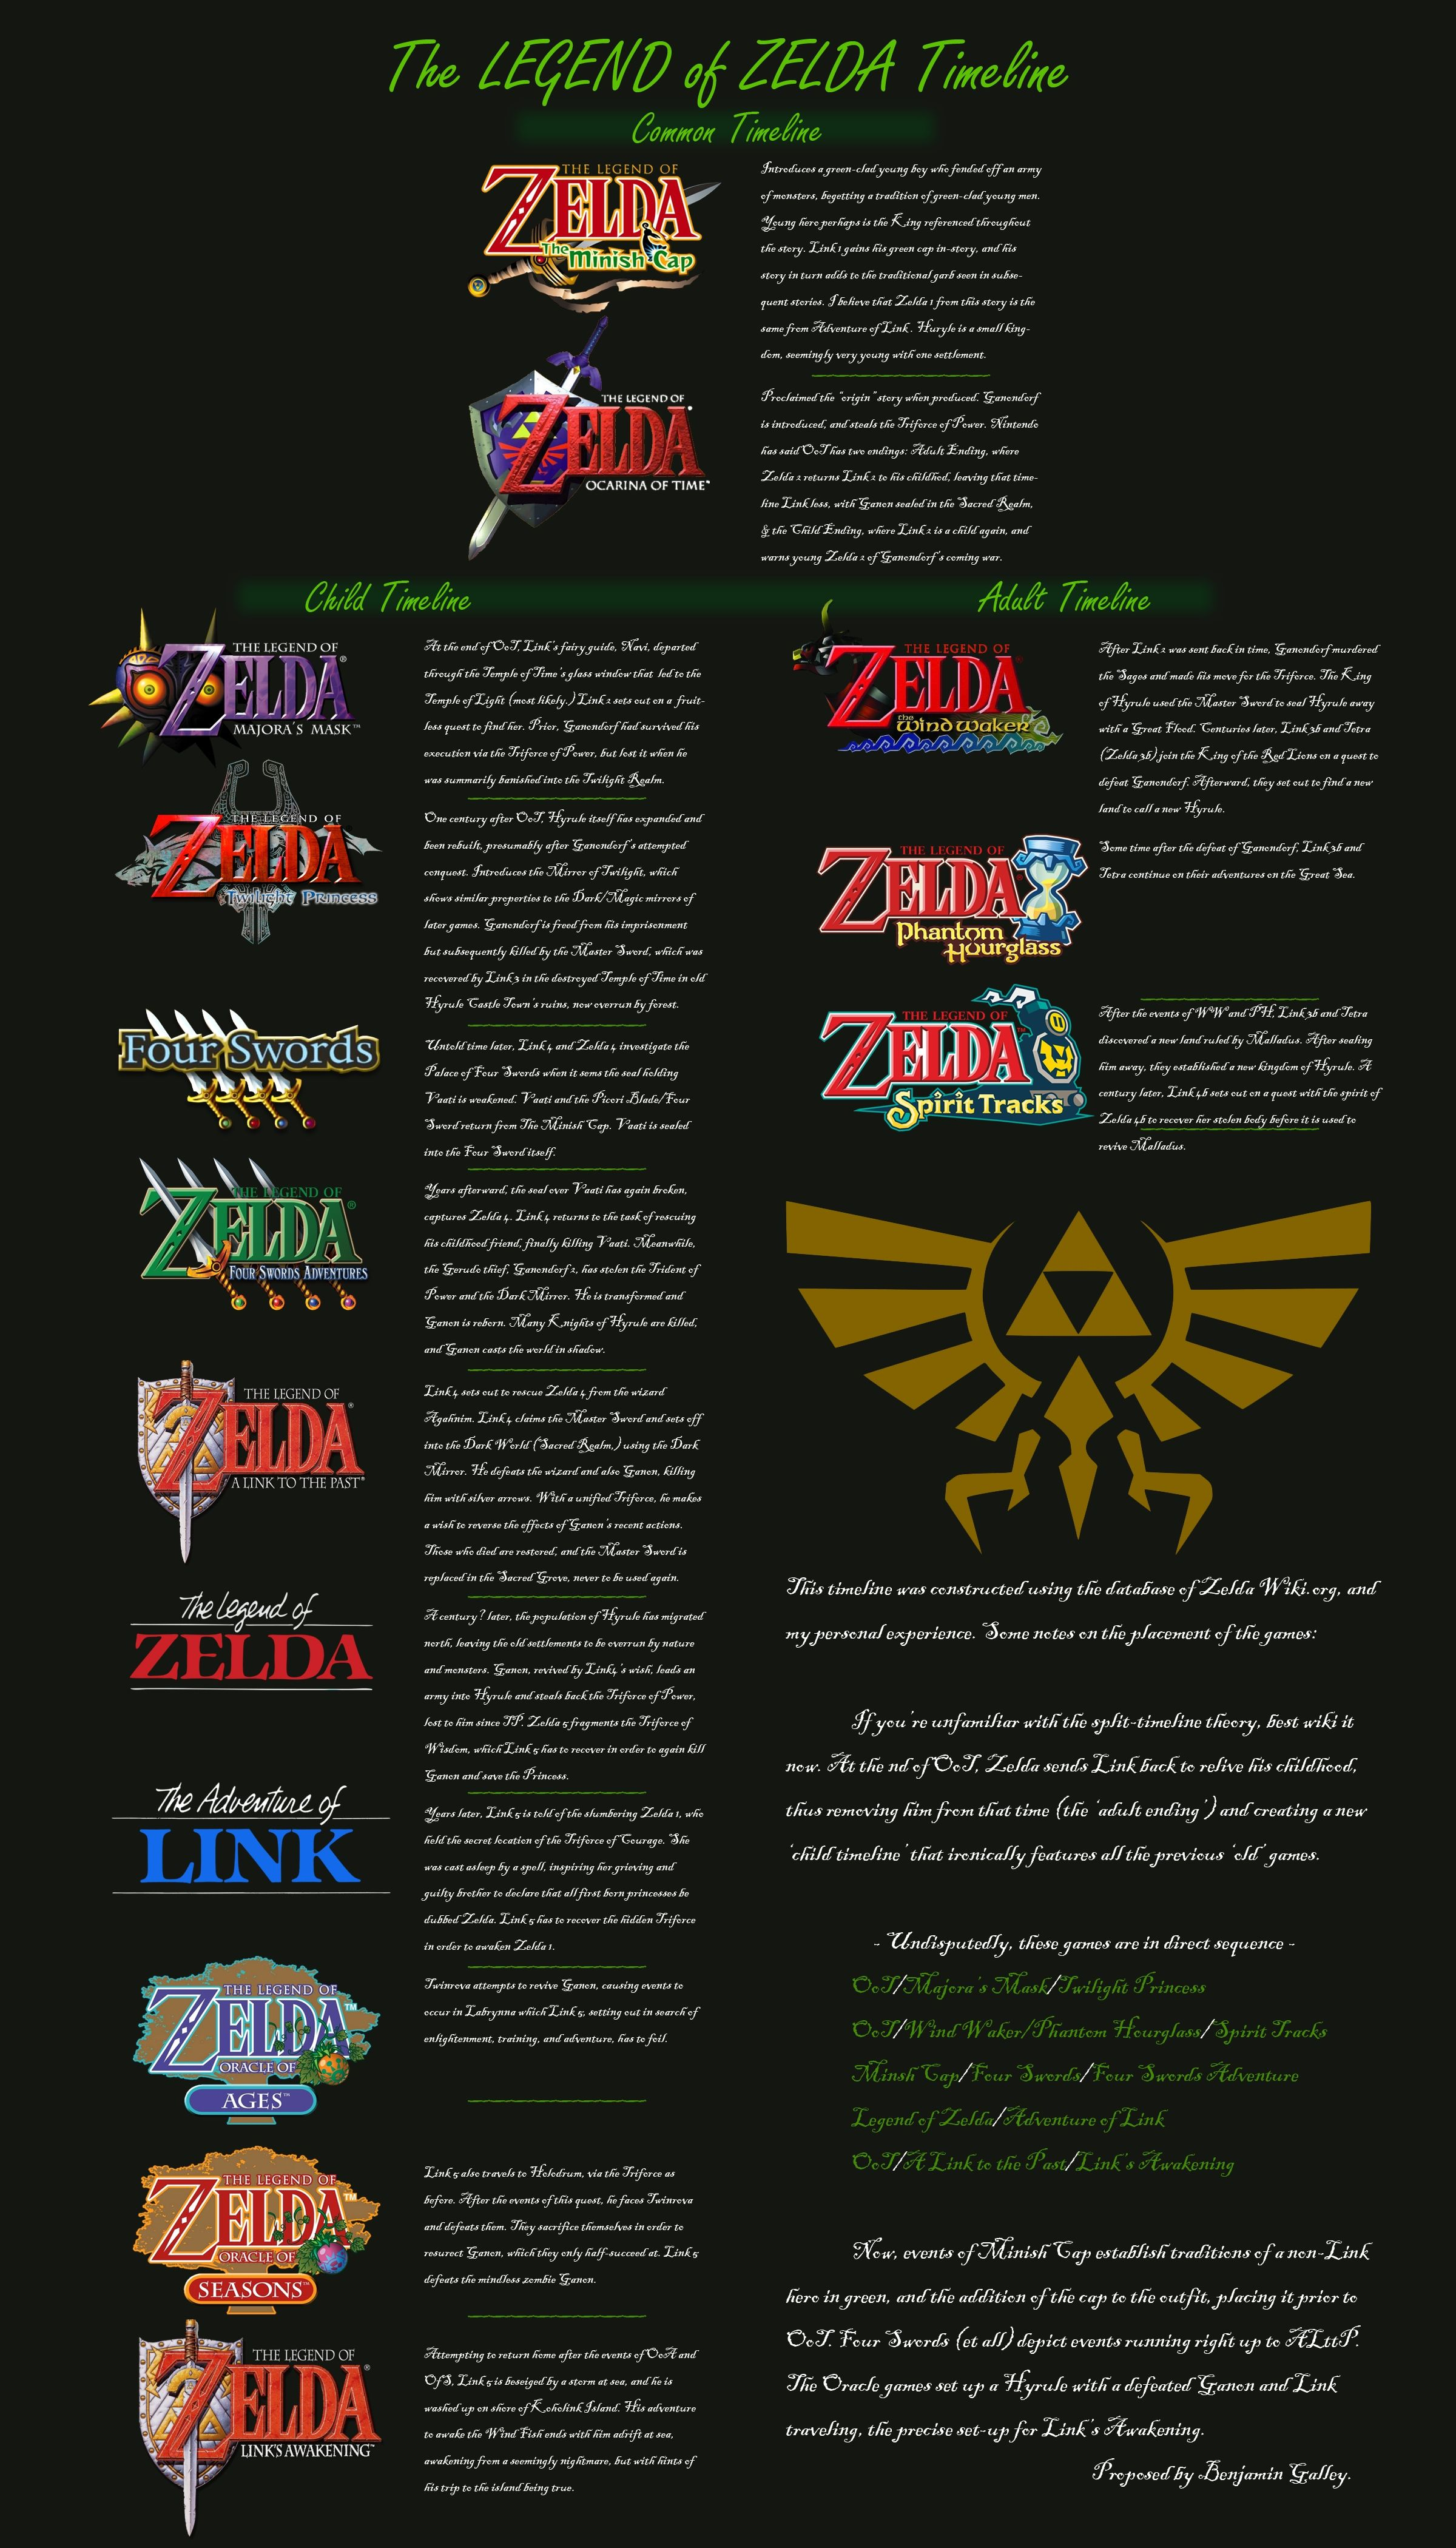 The timeline also zelda pinterest video games and game boy rh in